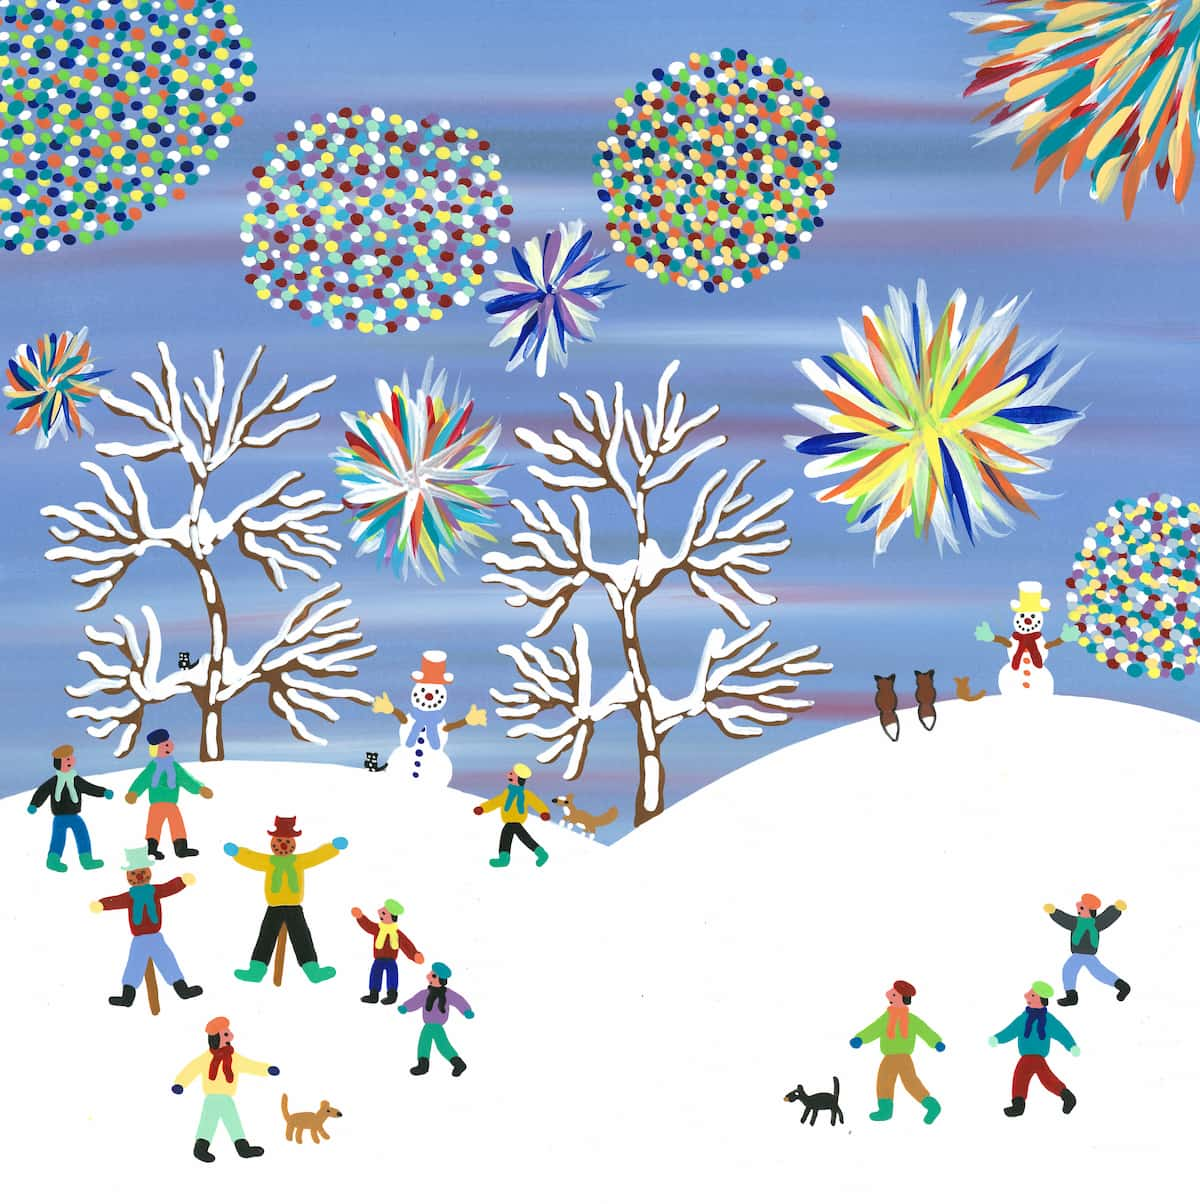 snowy field with fireworks in the distance painting